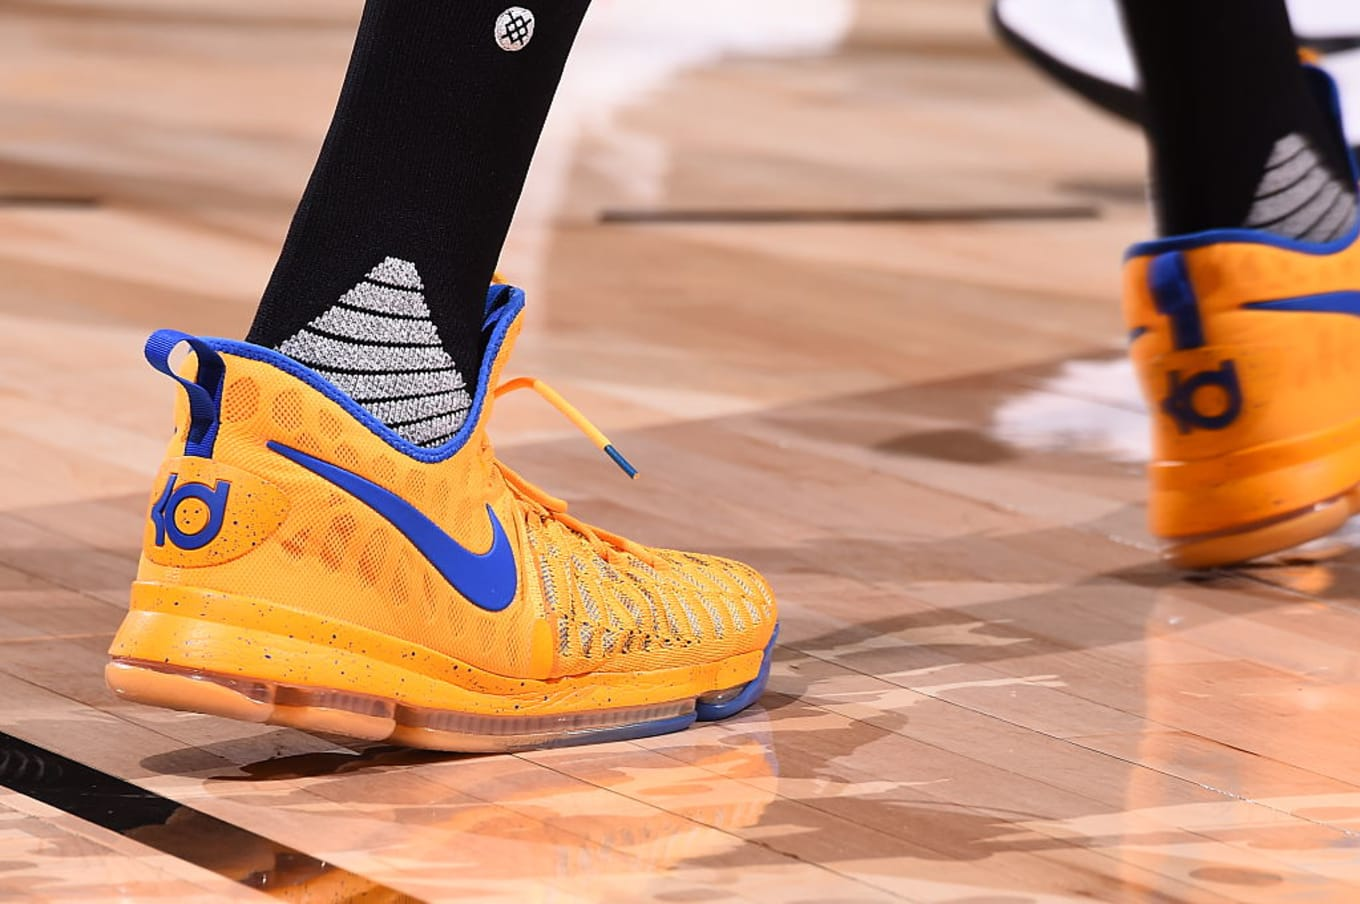 wholesale dealer 625ea 81f72 Kevin Durant wearing Yellow/Blue Nike KD 9 PE | Sole Collector